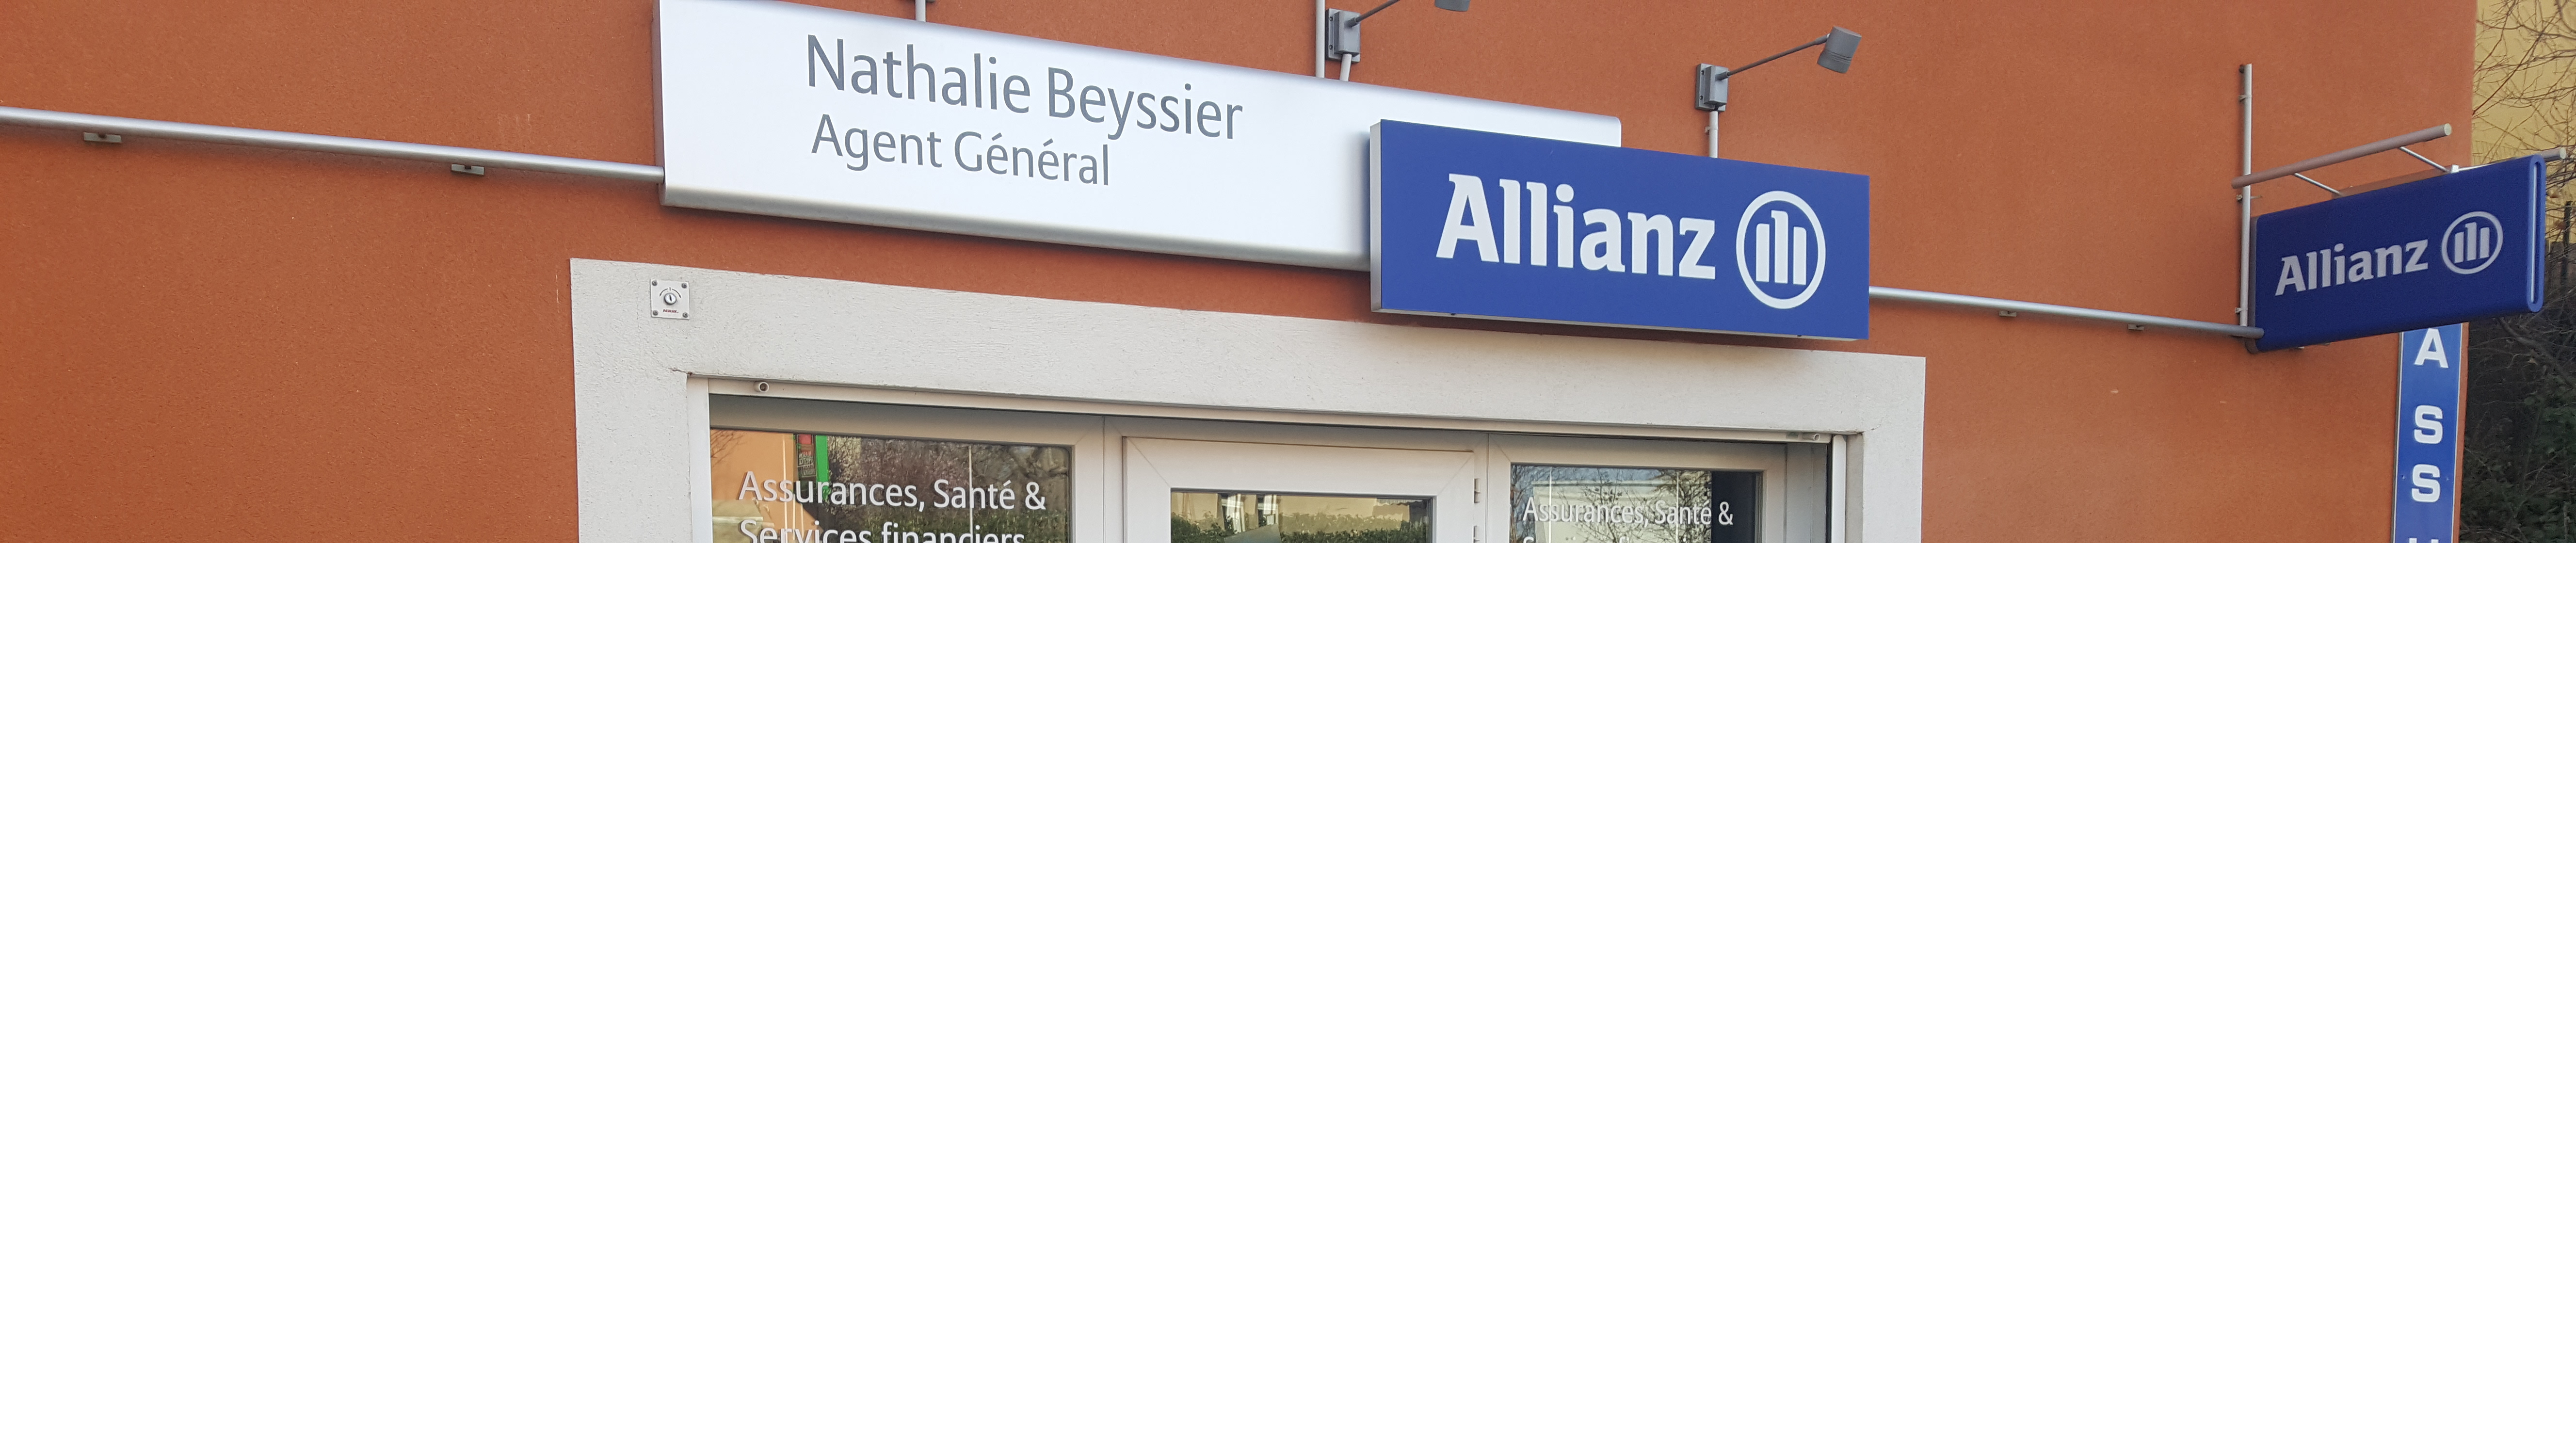 Allianz Cavaillon robion - Nathalie BEYSSIER